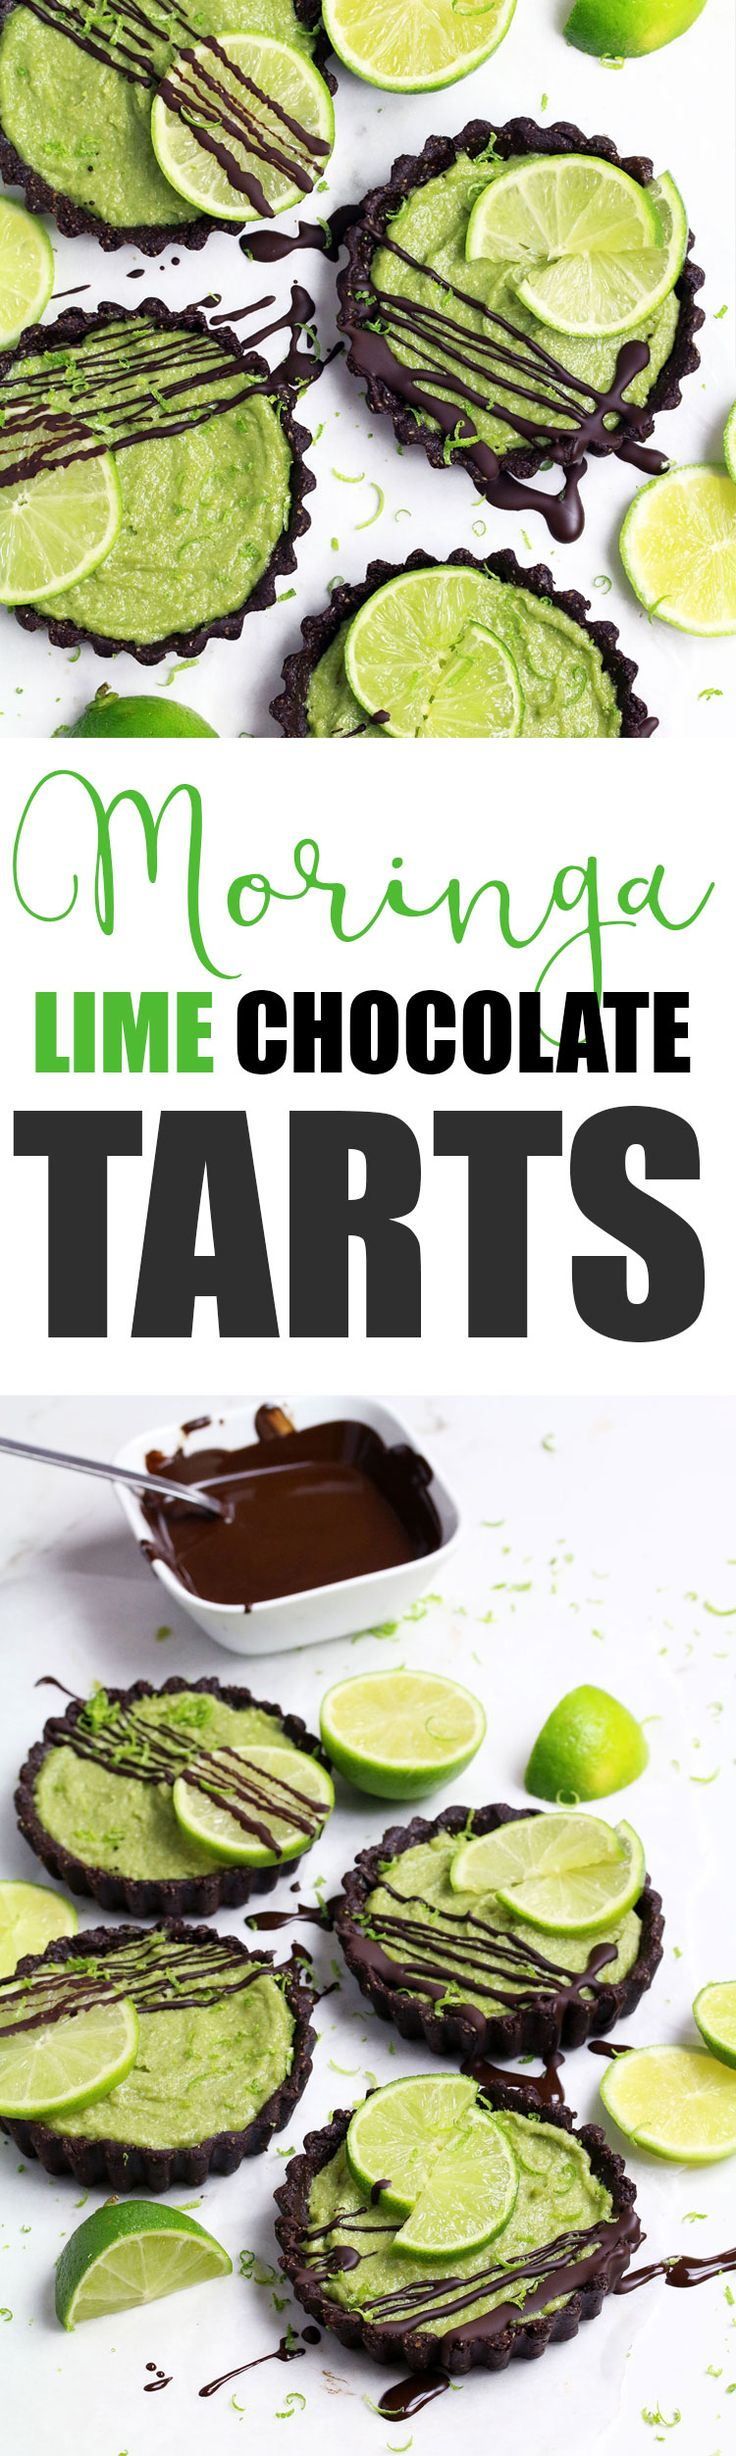 Moringa Lime Chocolate Tarts - UK Health Blog - Nadia's Healthy Kitchen